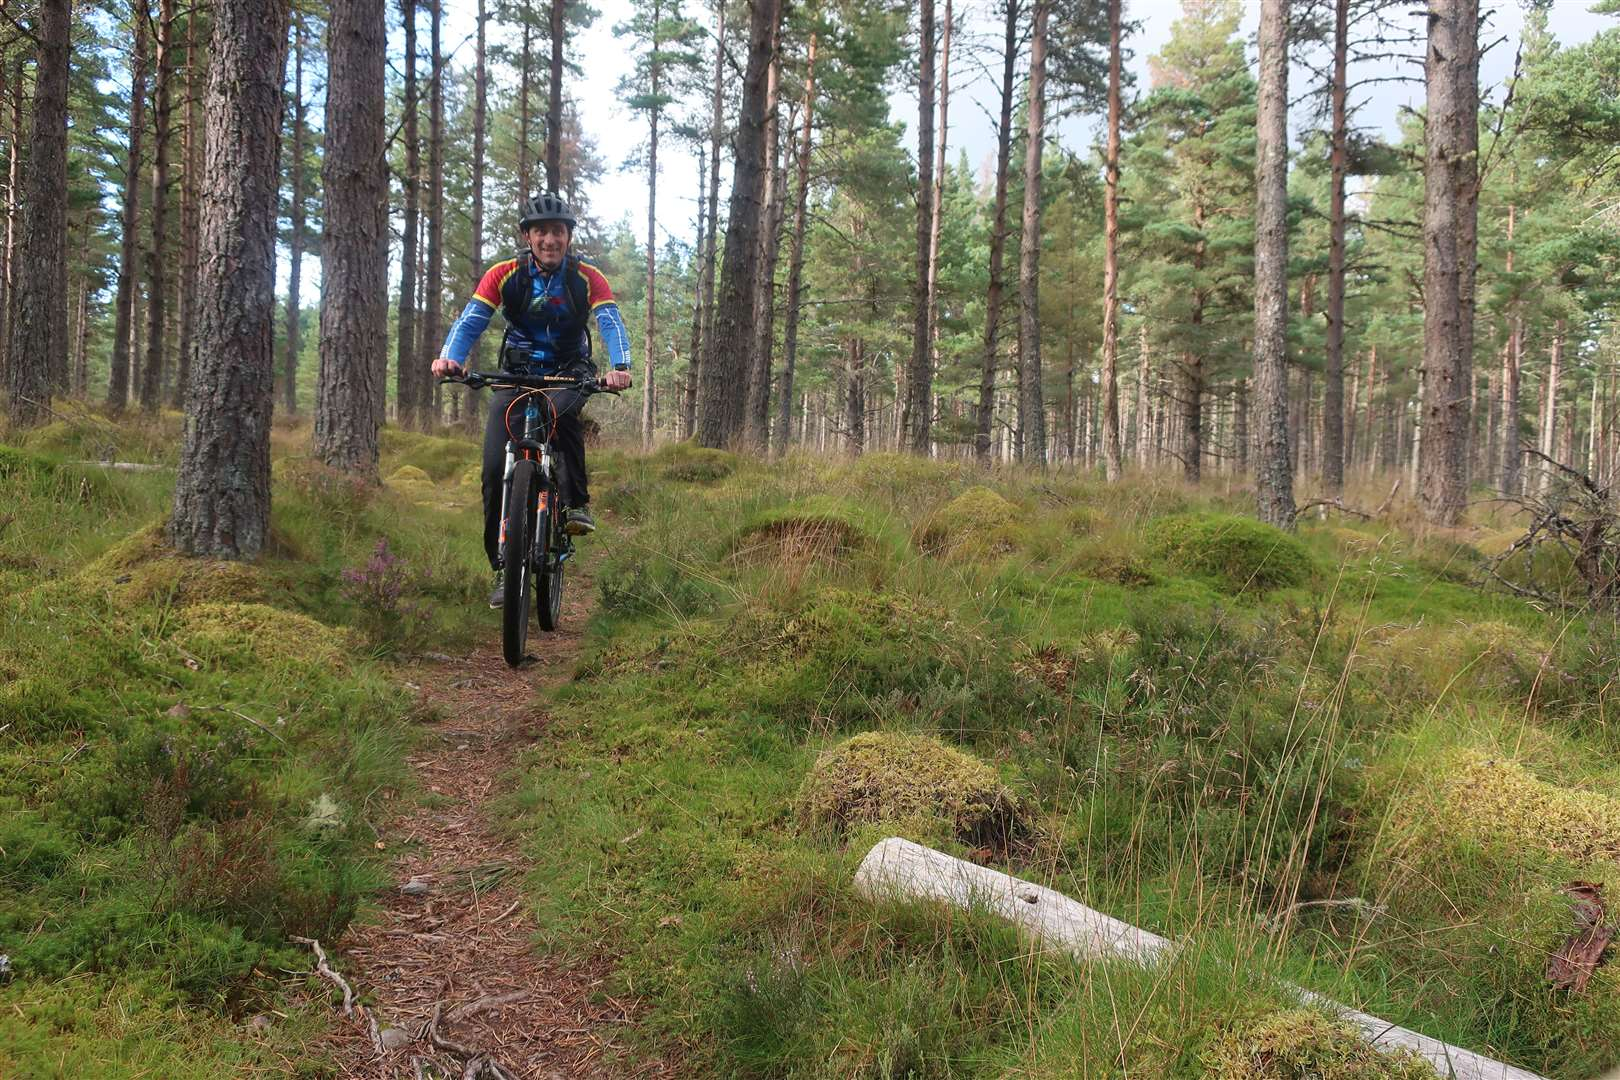 John enjoying the beautiful singletrack which was an unexpected find on this route.